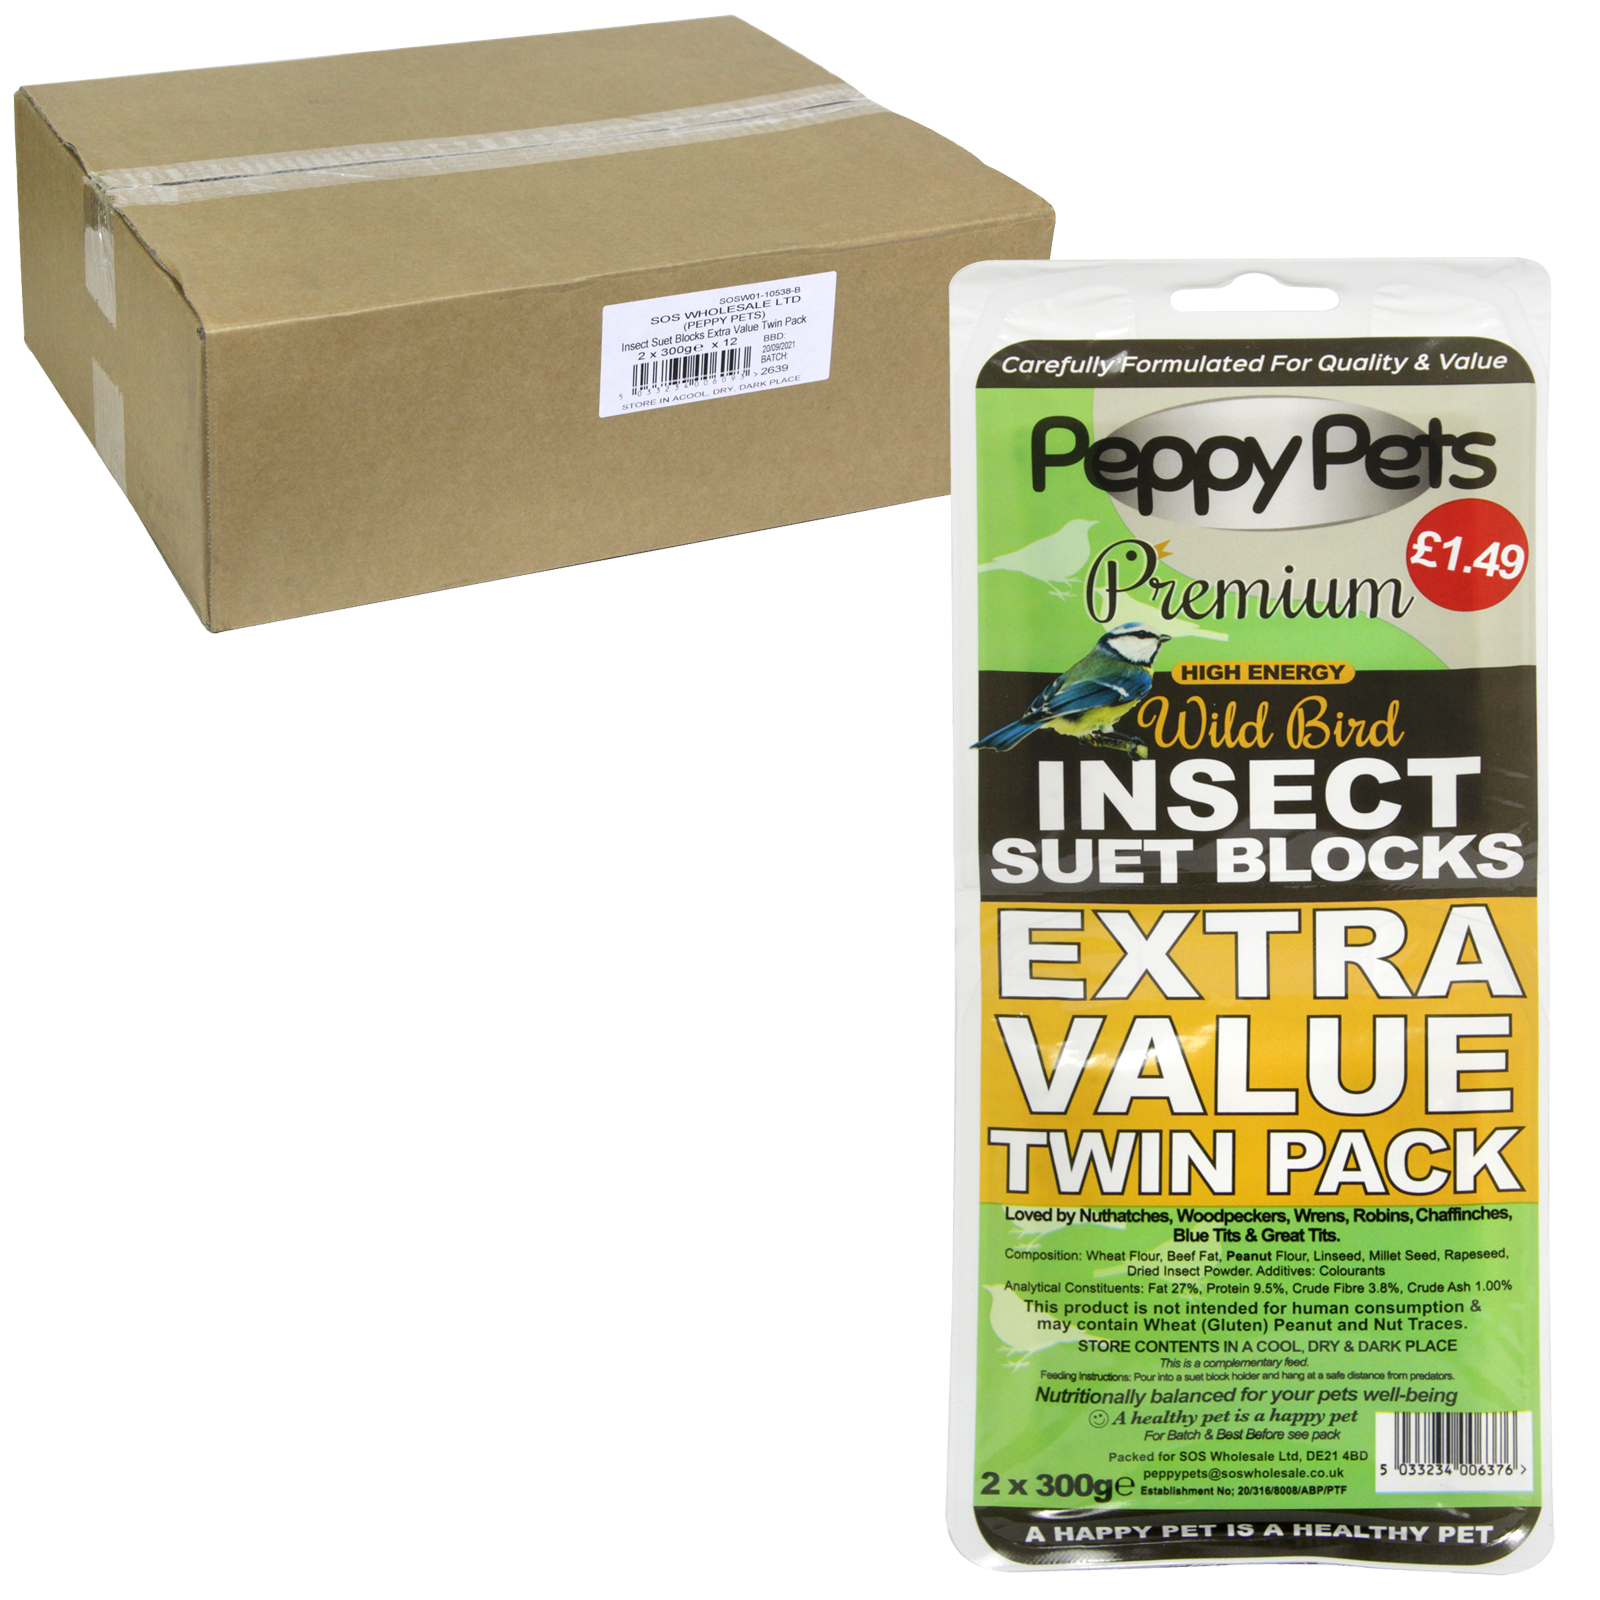 PEPPY PETS INSECT SUET BLOCKS PM1.49 VALUE TWIN PACK 2 X 300G X12